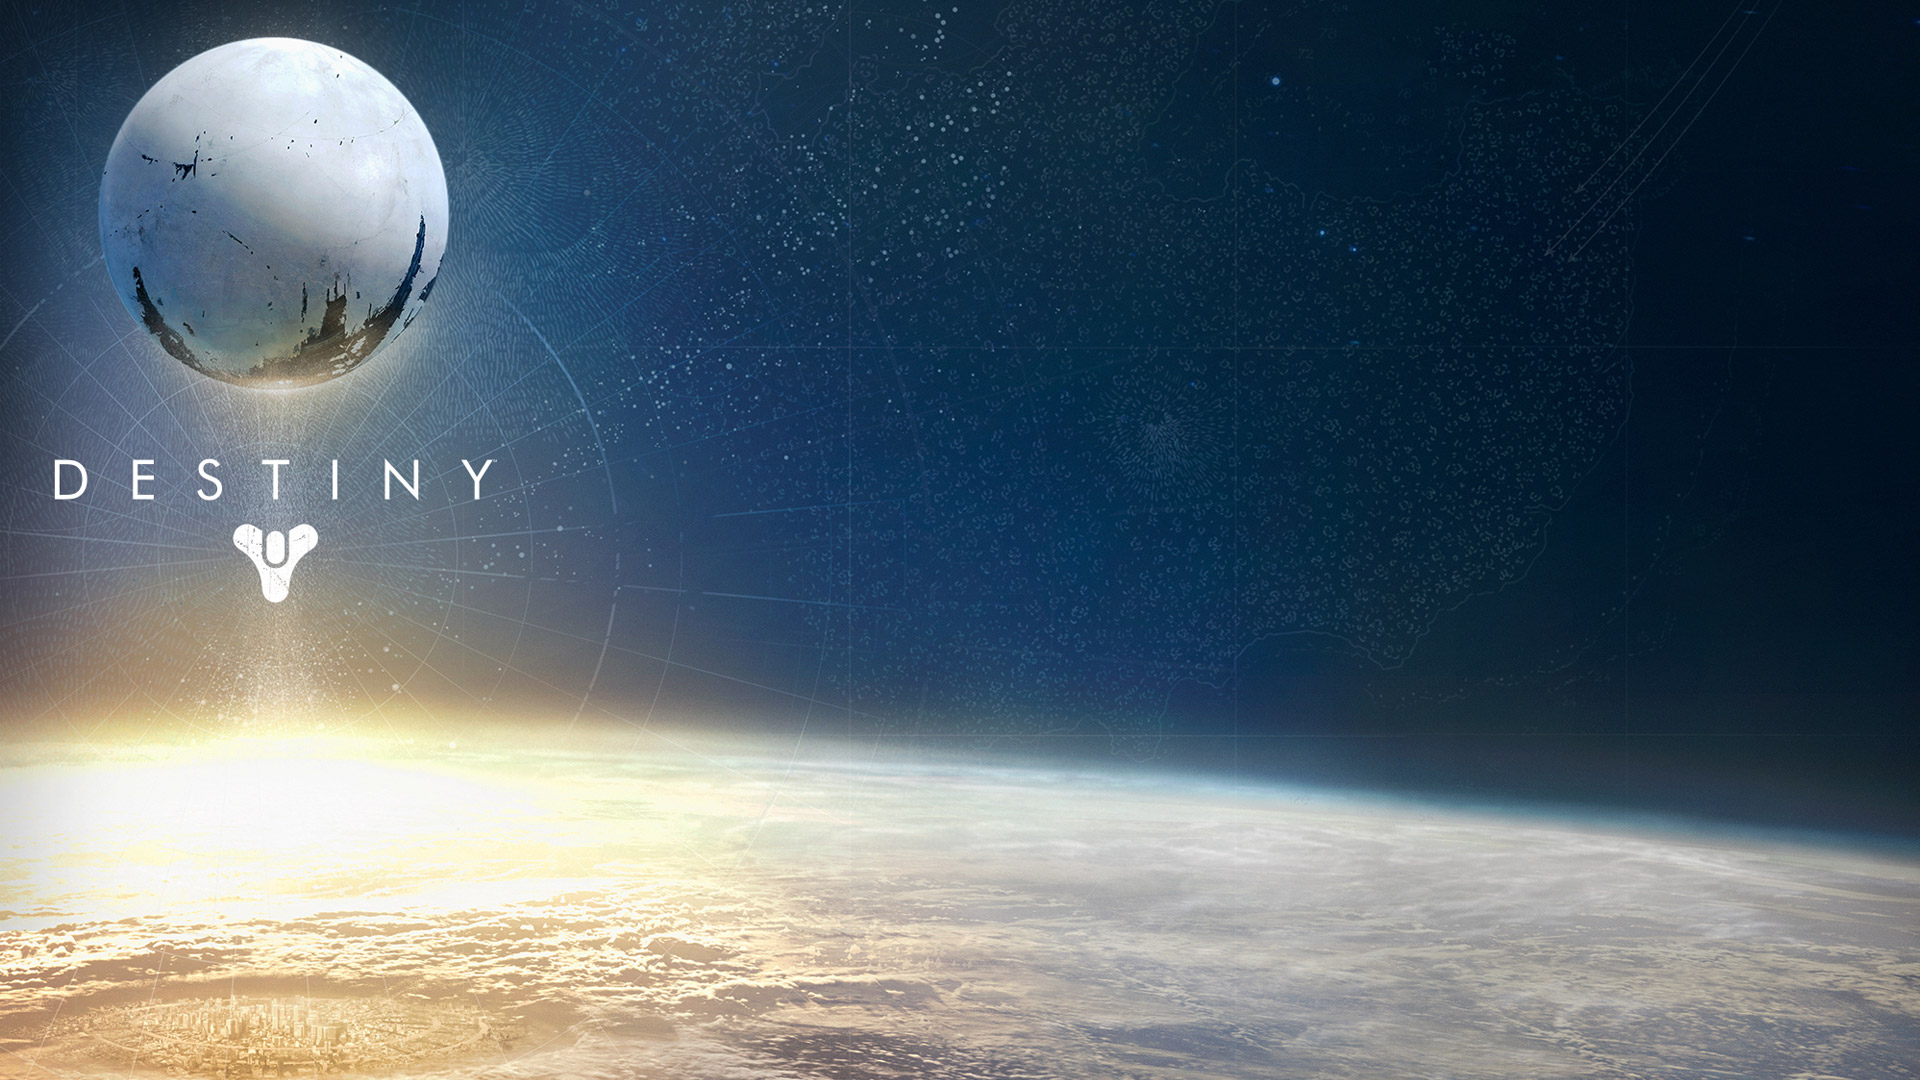 Destiny full hd wallpaper and background image 1920x1080 for Photo fond ecran hd